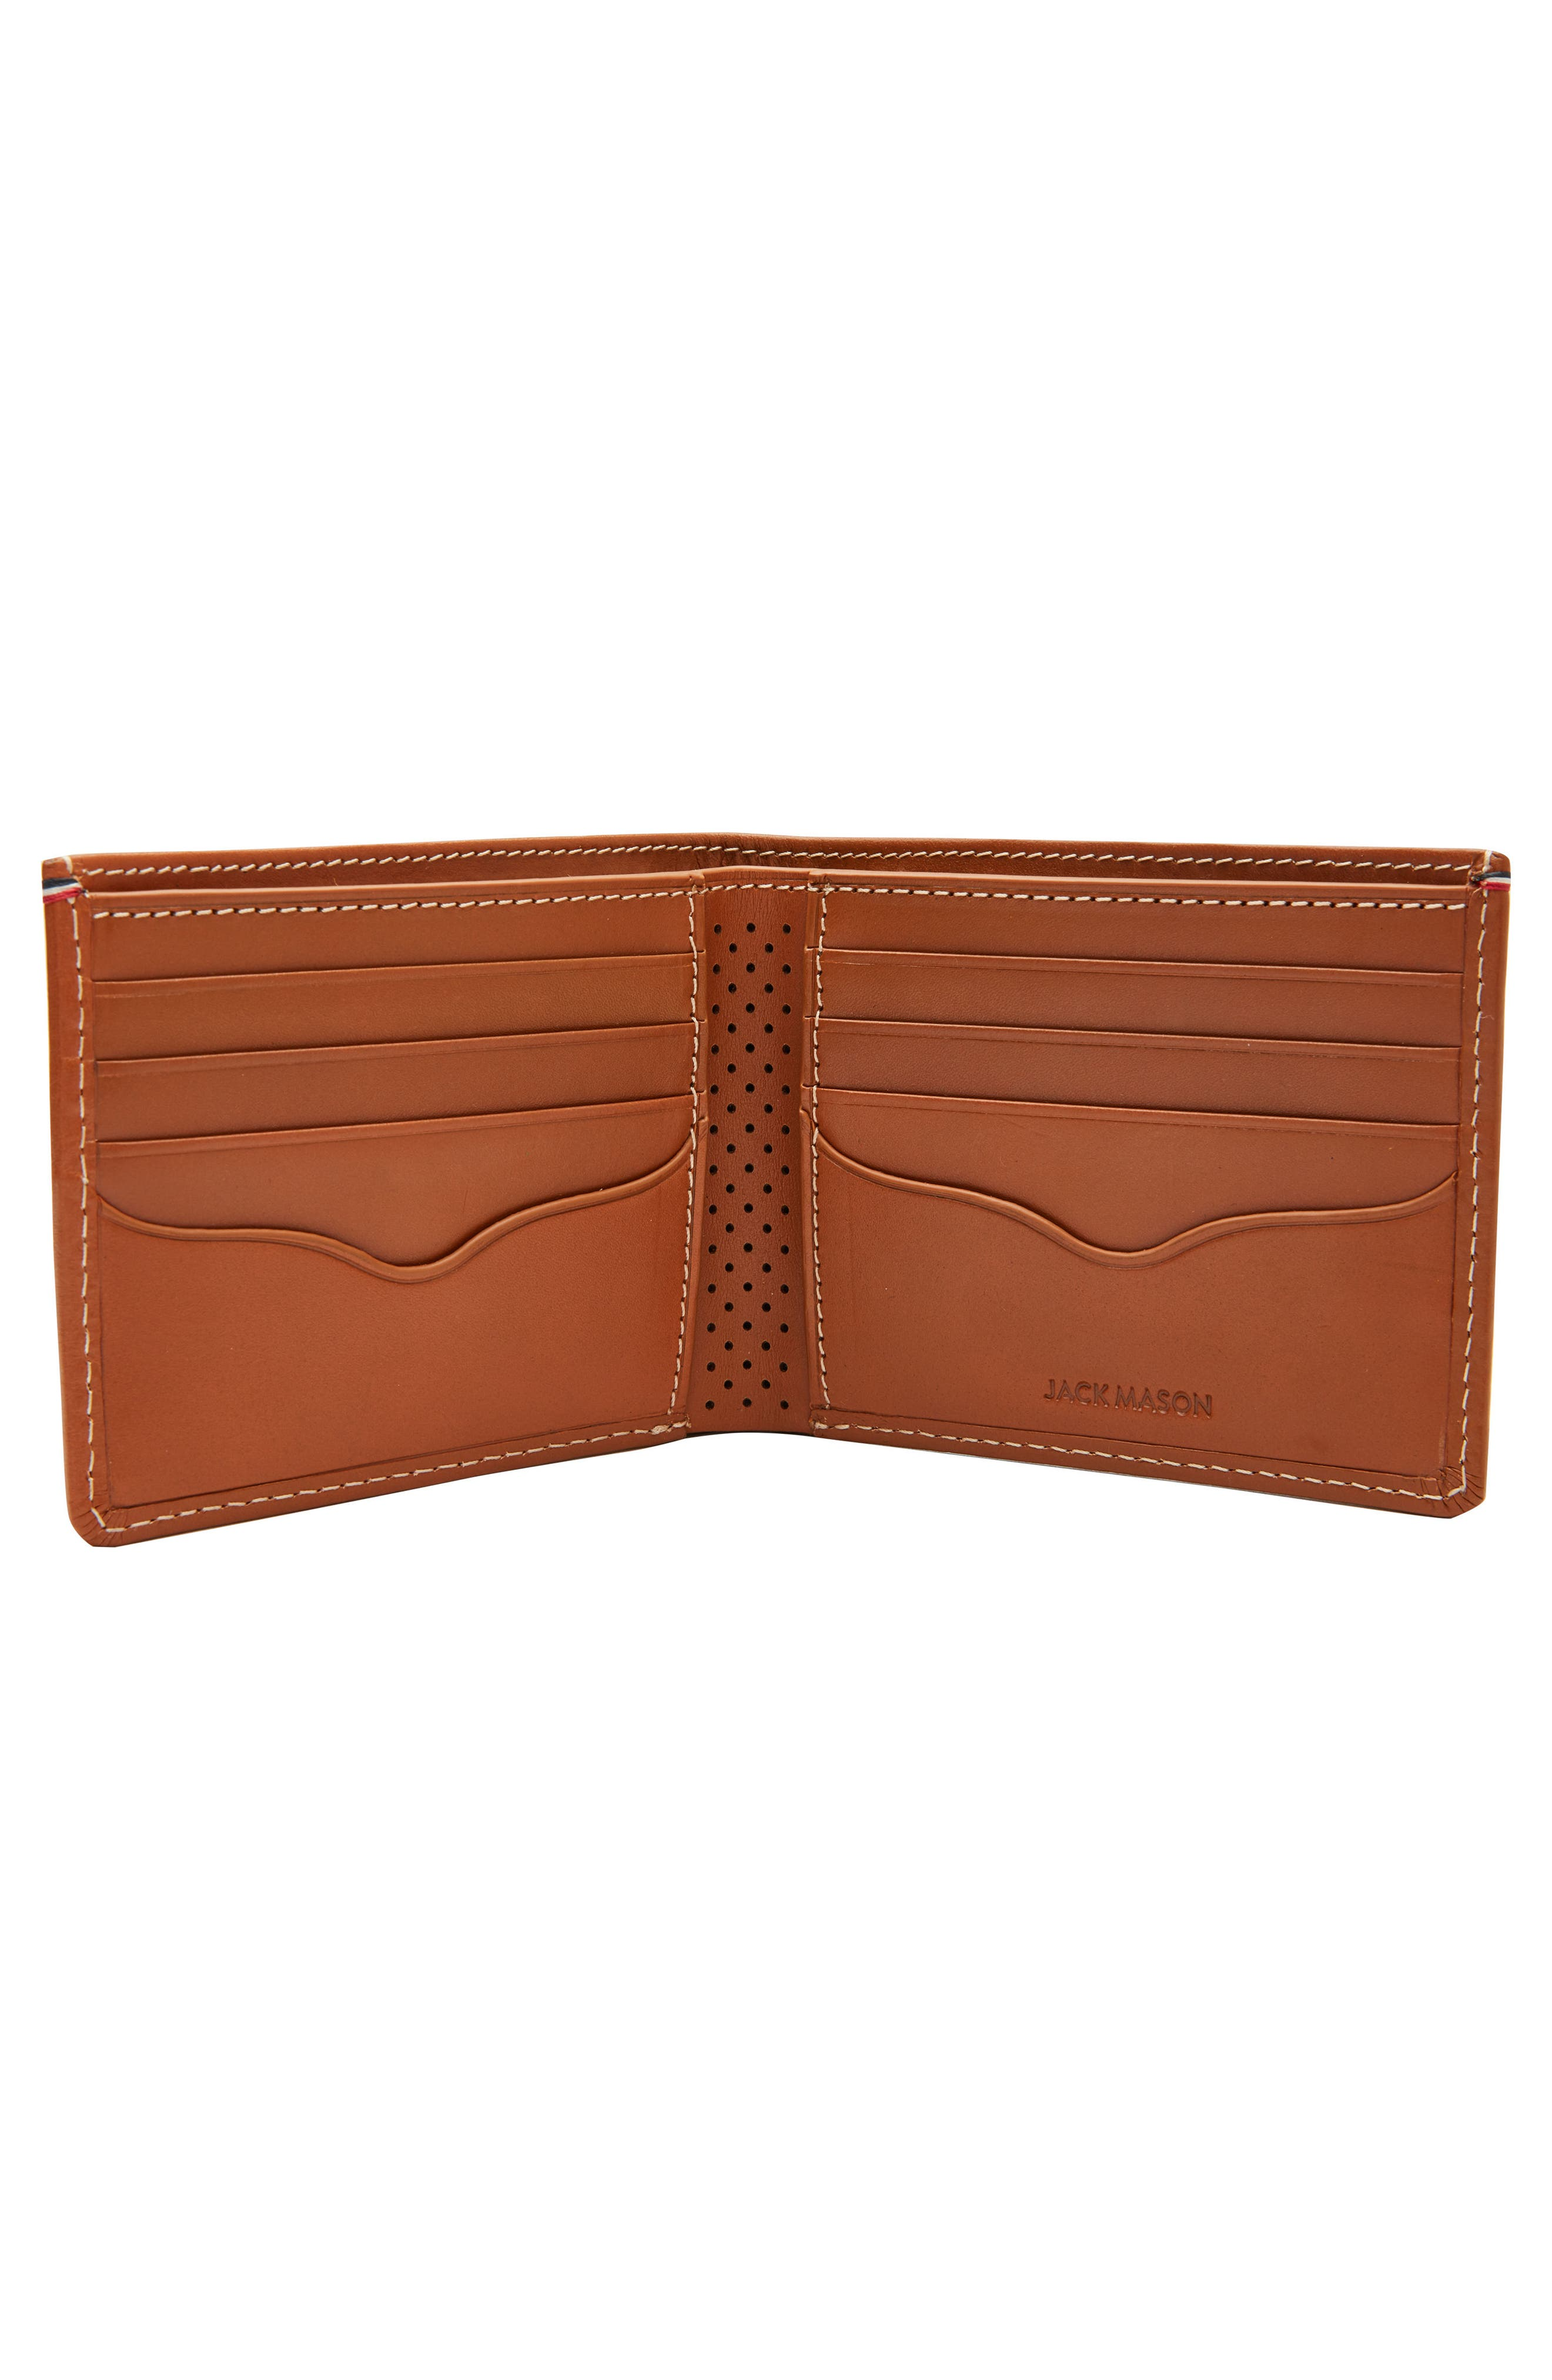 Leather Wallet,                             Alternate thumbnail 2, color,                             250